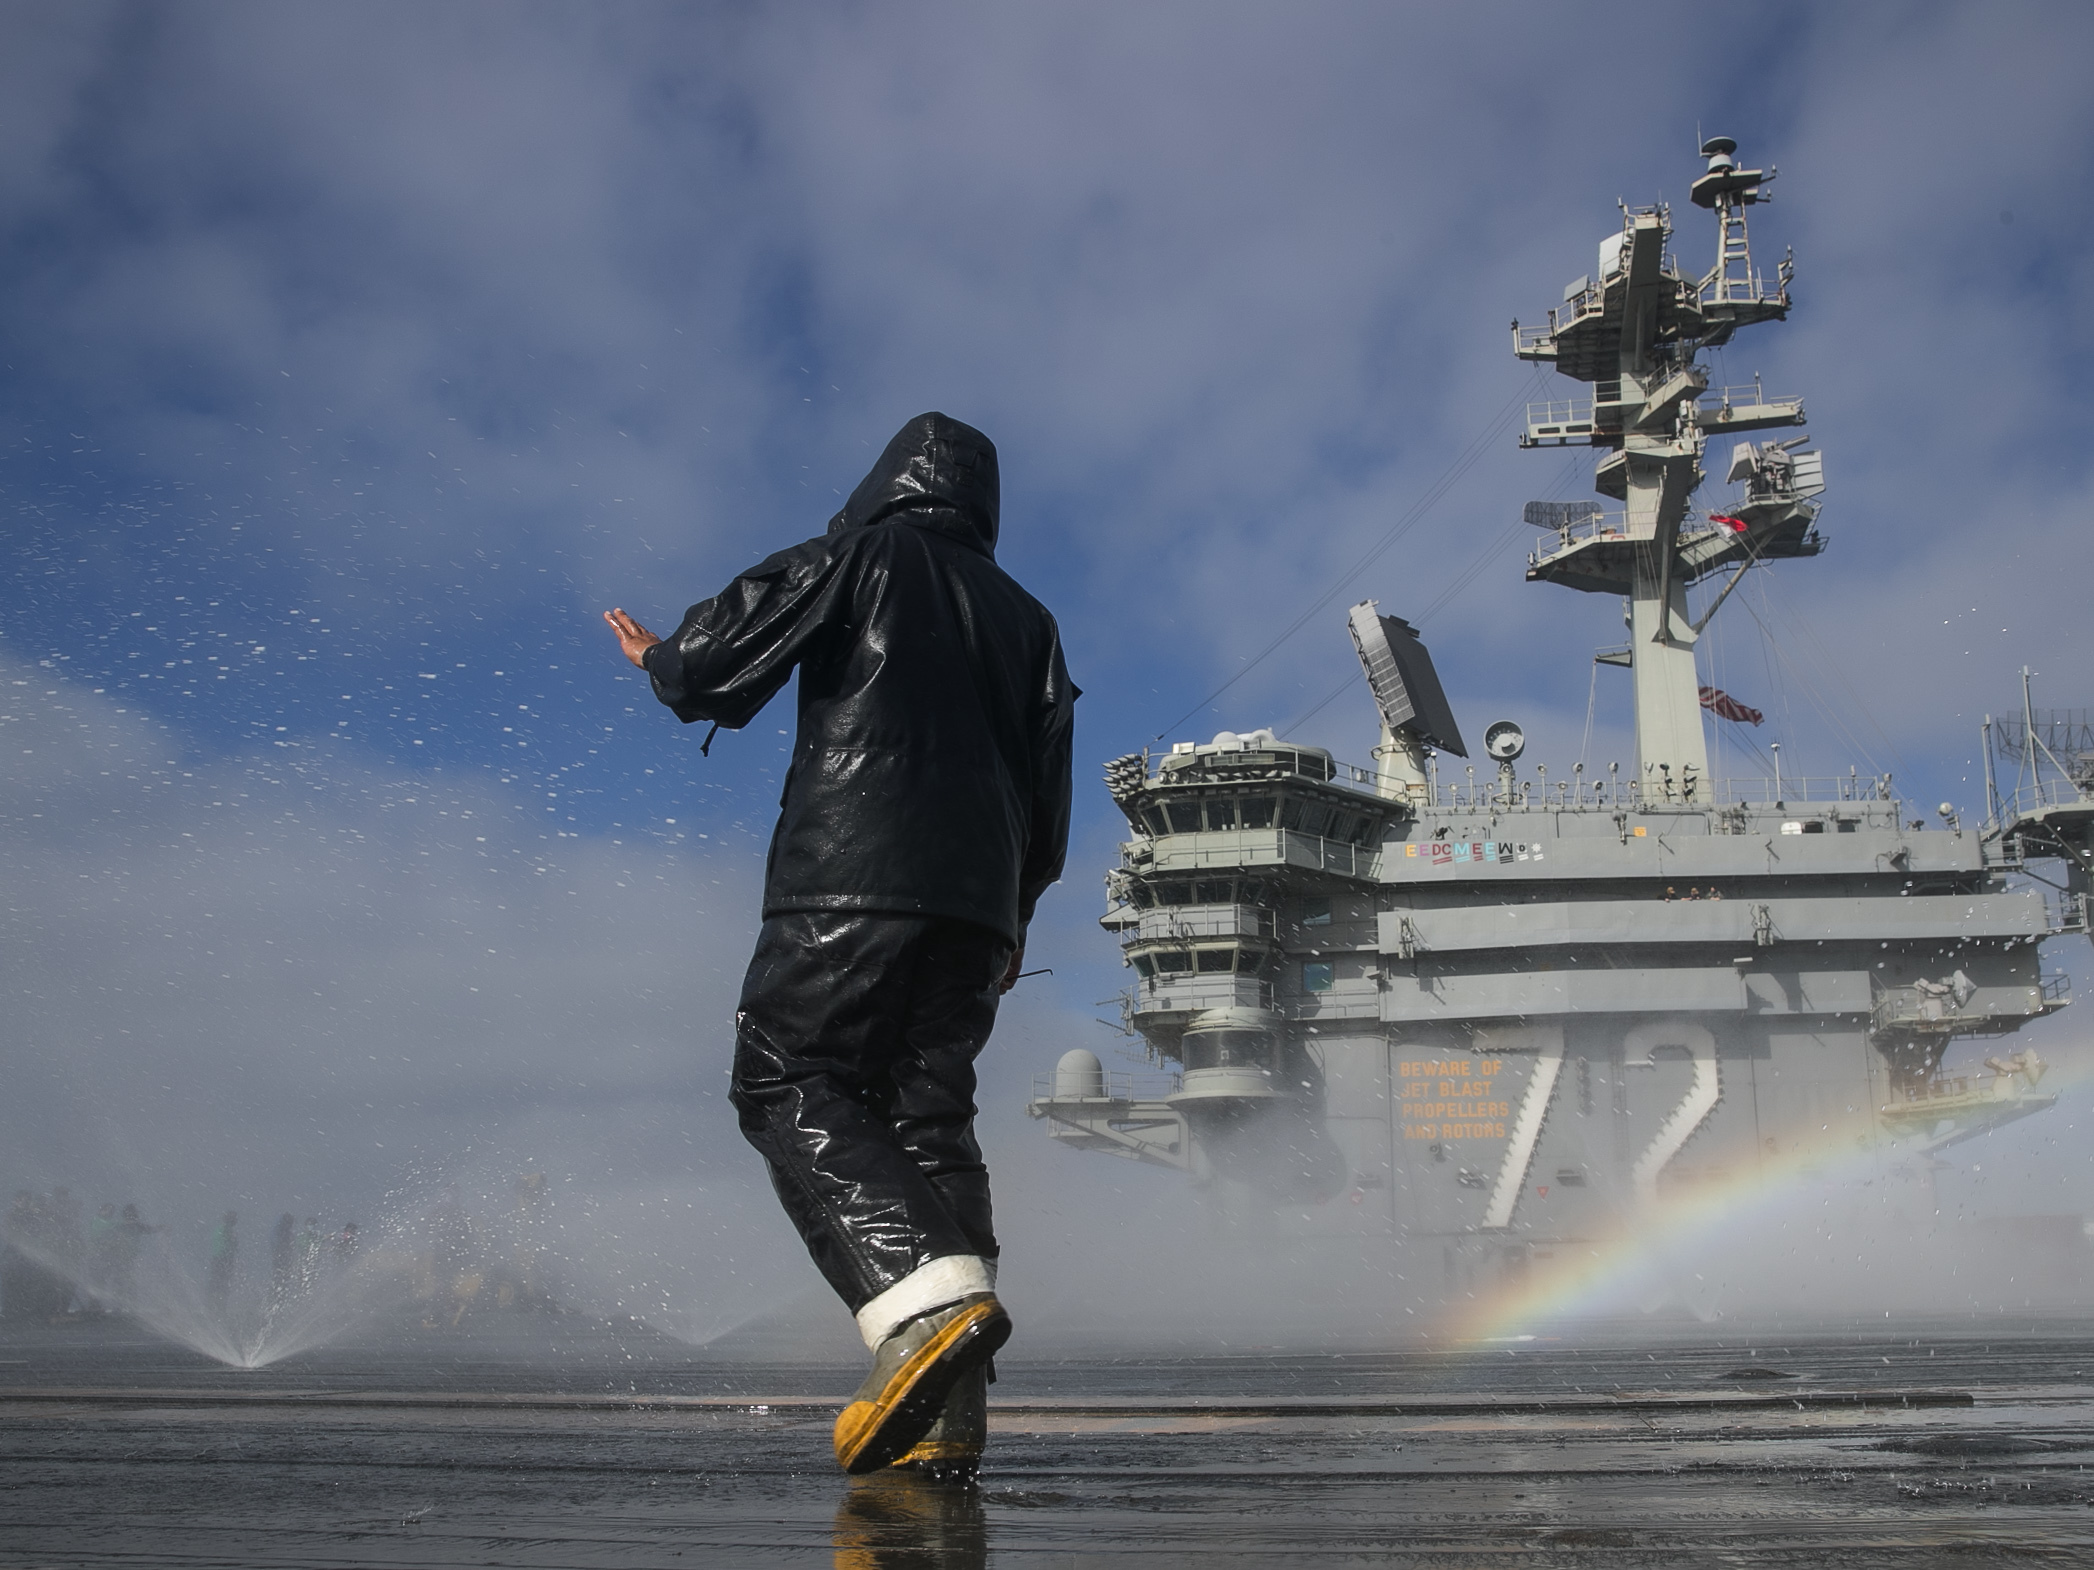 Aviation Boatswain's Mate (Handling) Airman Michael Meneses inspects the flight deck's countermeasure wash-down sprinklers on the aircraft carrier USS Abraham Lincoln (CVN 72) on May 16, 2020, in the Pacific Ocean. (Mass Communication Specialist Seaman Apprentice Javier Reyes/Navy)